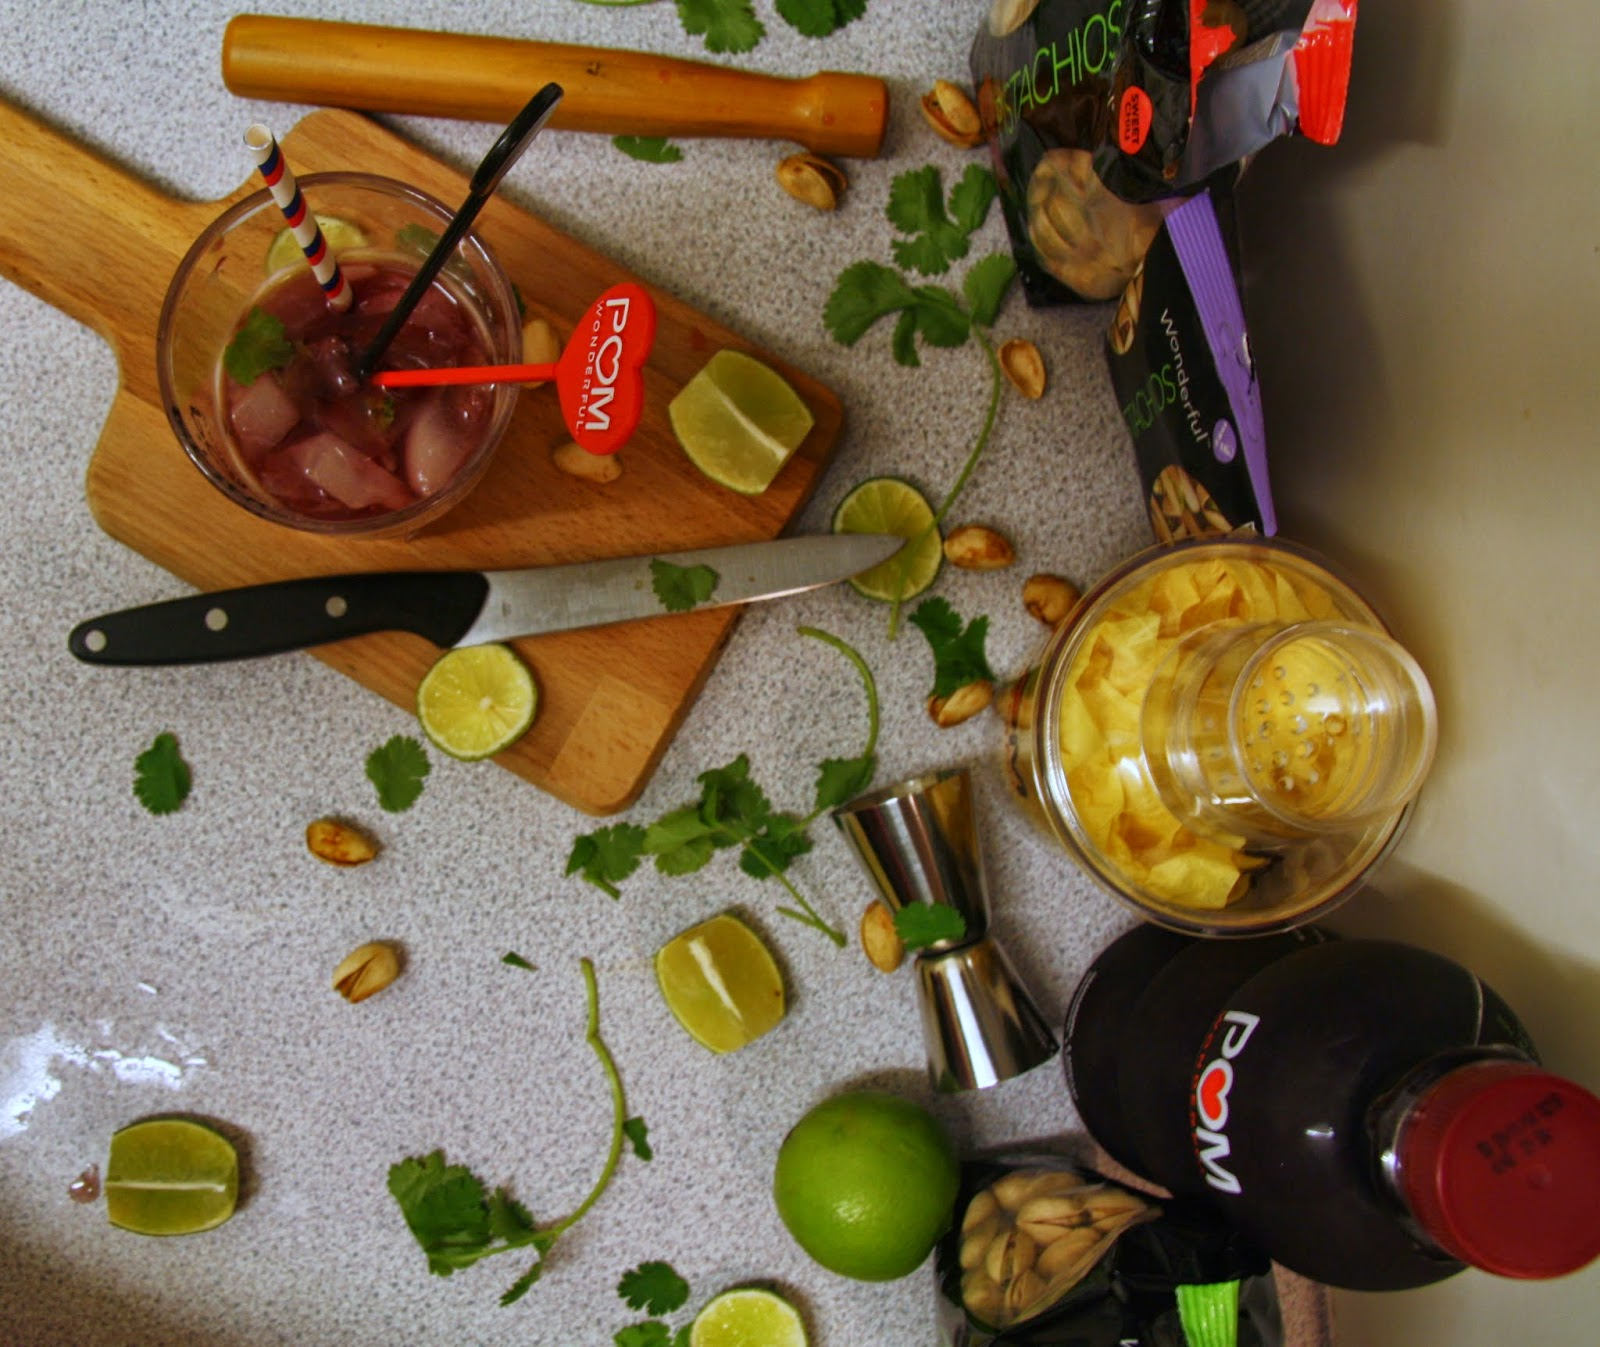 Messy cocktail making with Pom Wonderful and Wonderful Pistachios from Anyonita Nibbles